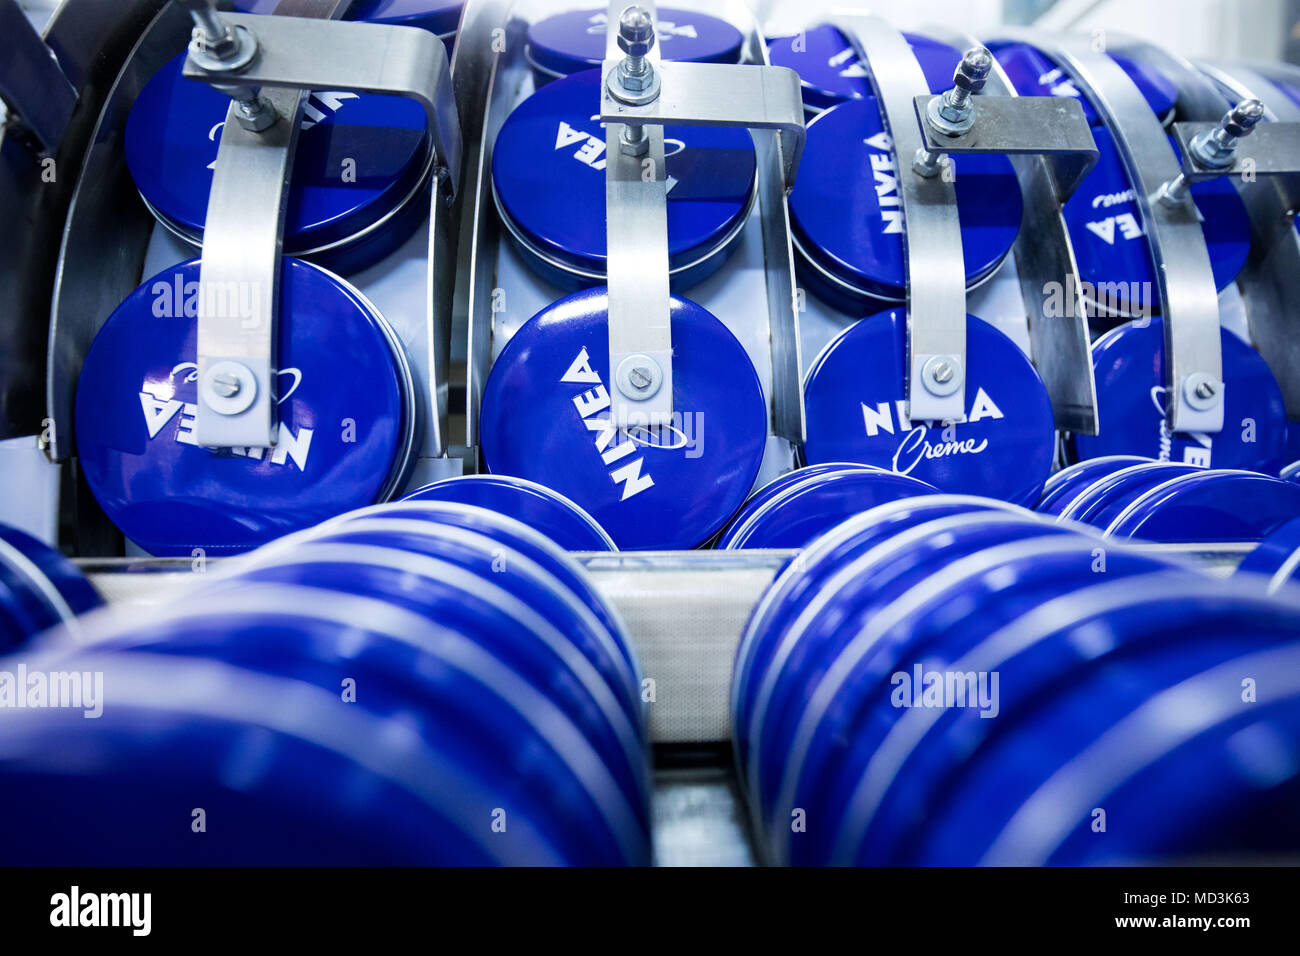 18 April 2018, Germany, Hamburg: Cans of Nivea-Creme at the production plant of the German personal-care company Beiersdorf. Photo: Christian Charisius/dpa - Stock Image